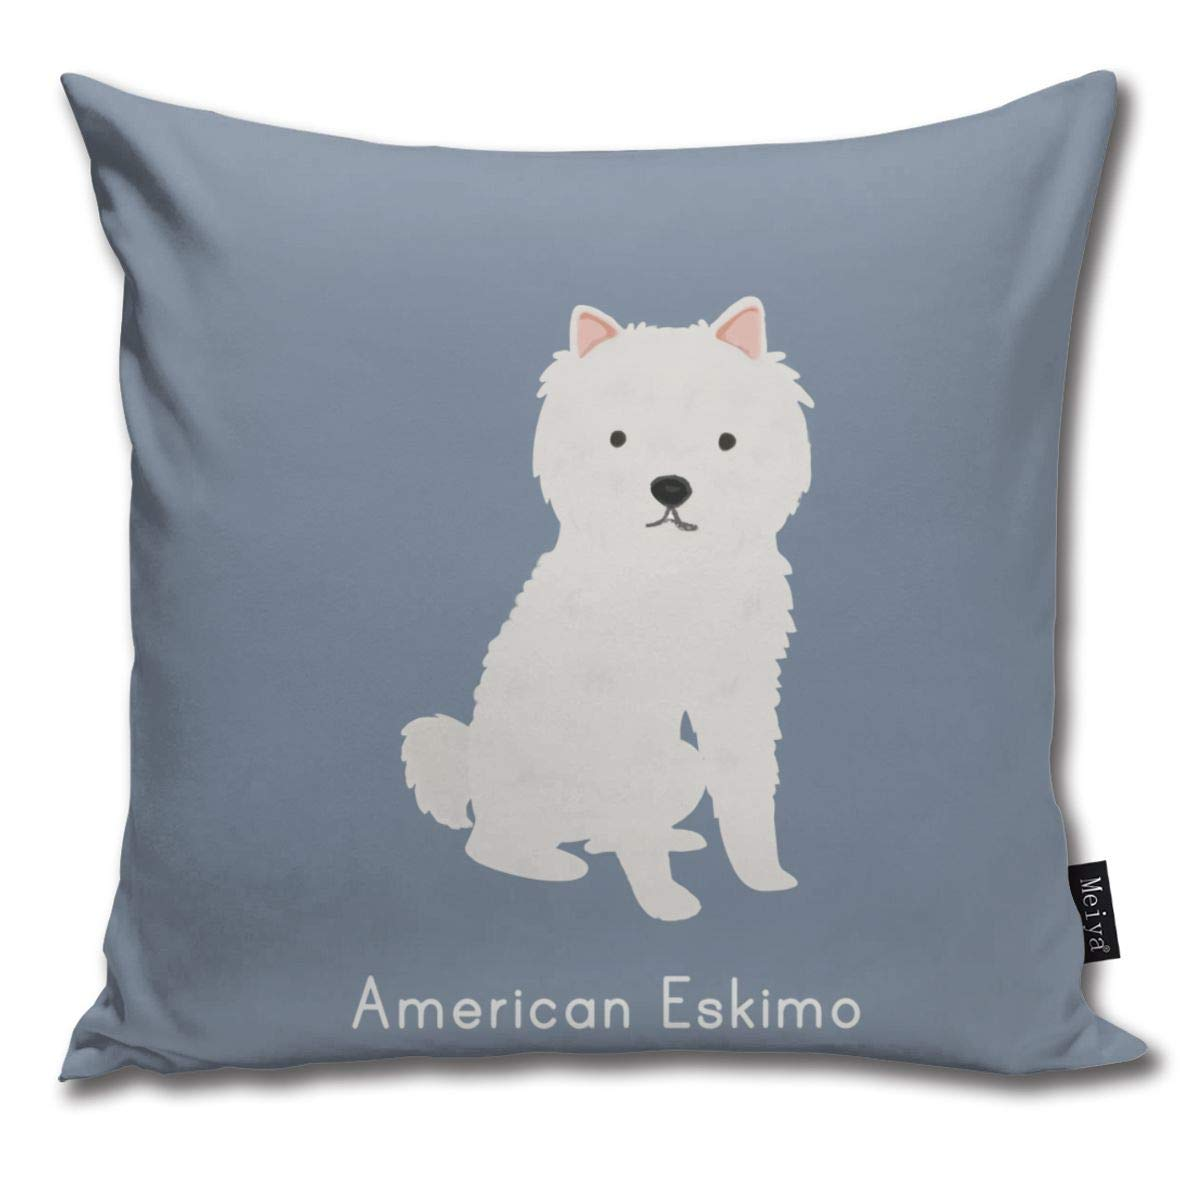 Jennsala Cute American Eskimo Dog Decorative Pillowcase for Home Sofa Bedding Couch 18 x 18 Inch